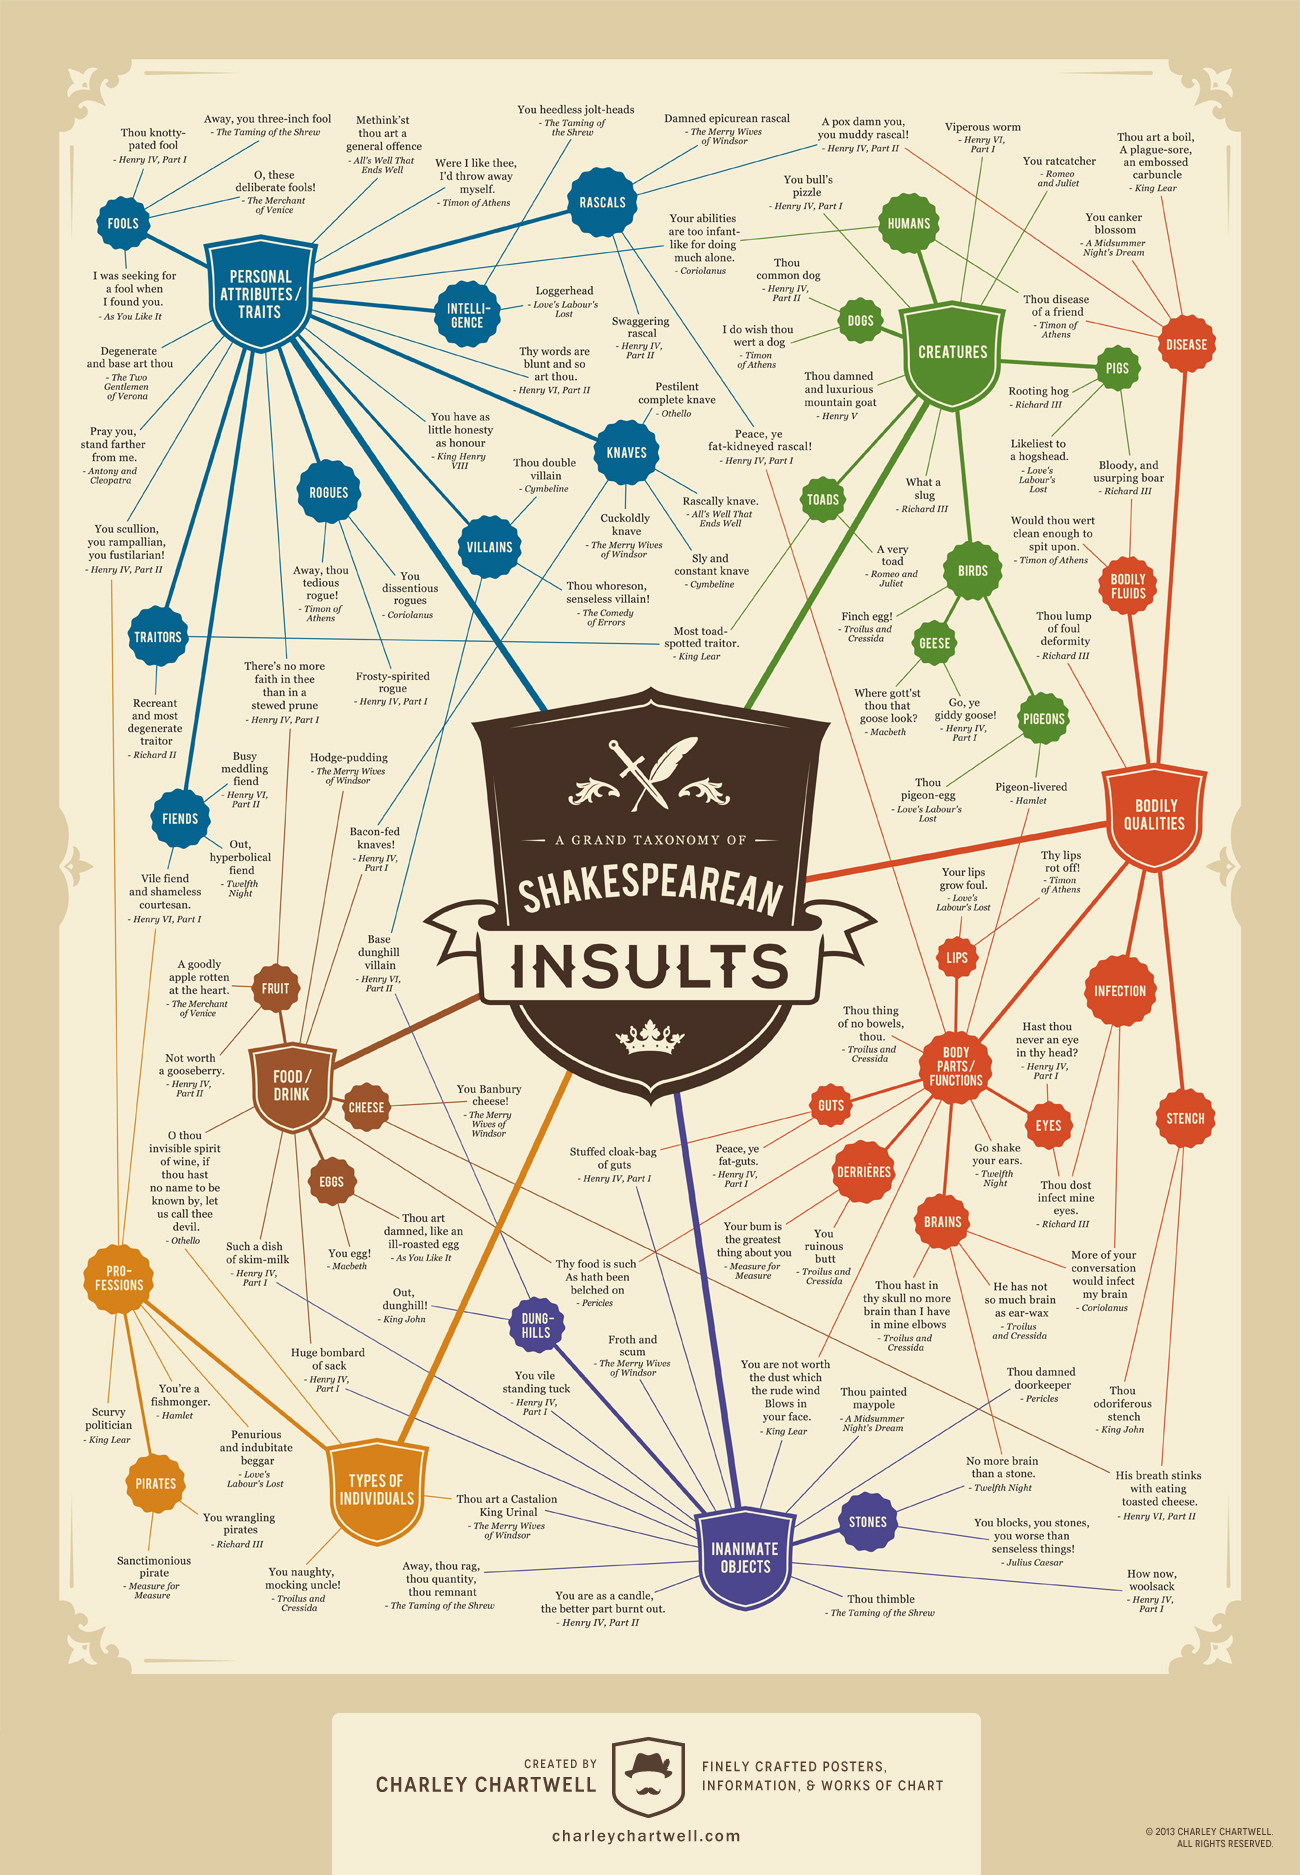 A Grand Taxonomy Of Shakespearean Insults